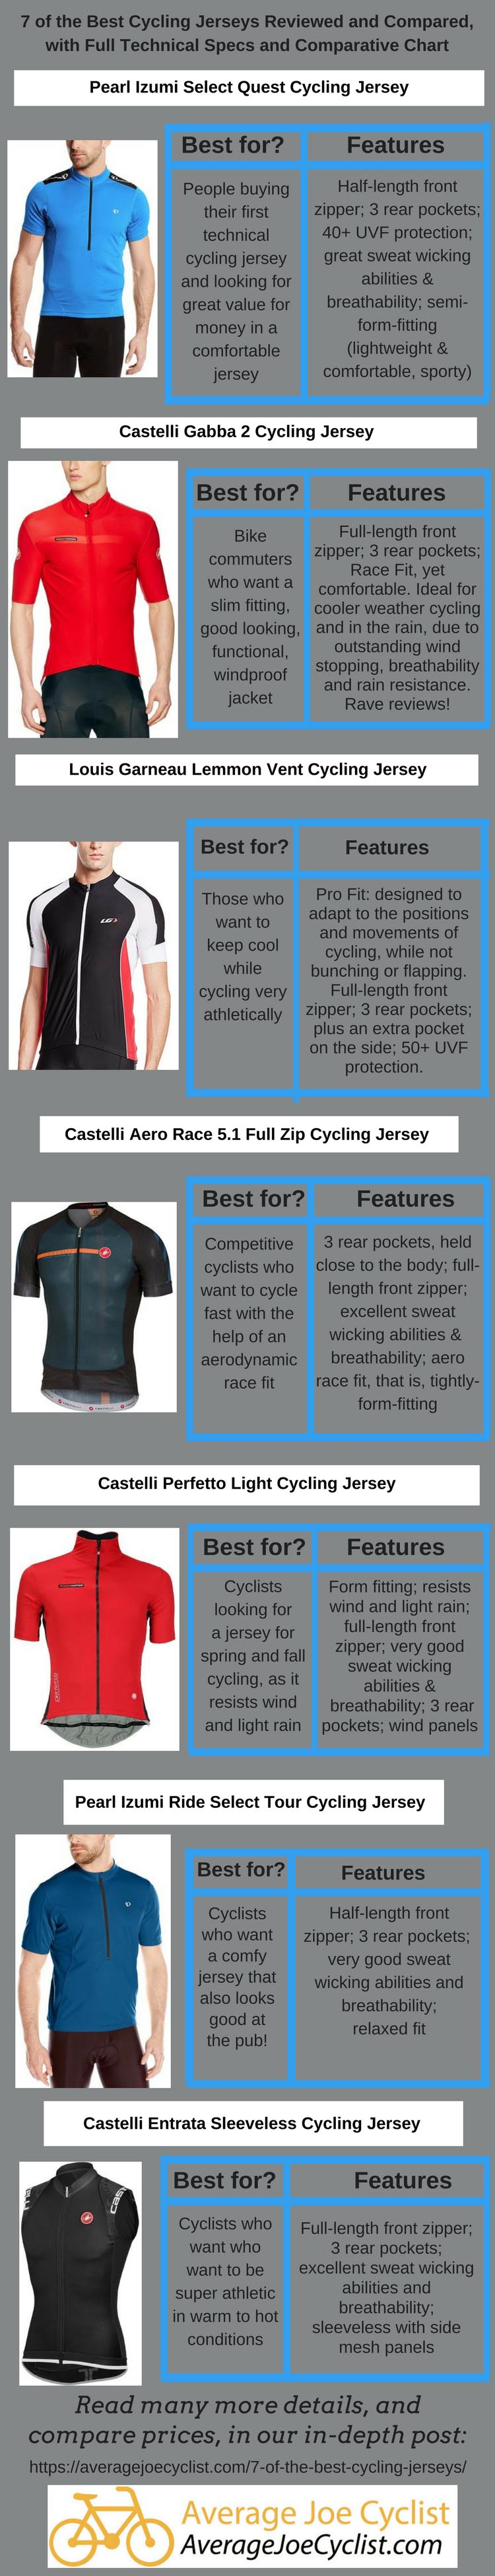 1743a0f9b13e1e 7 of the best cycling jerseys — How to pick the best cycling jersey